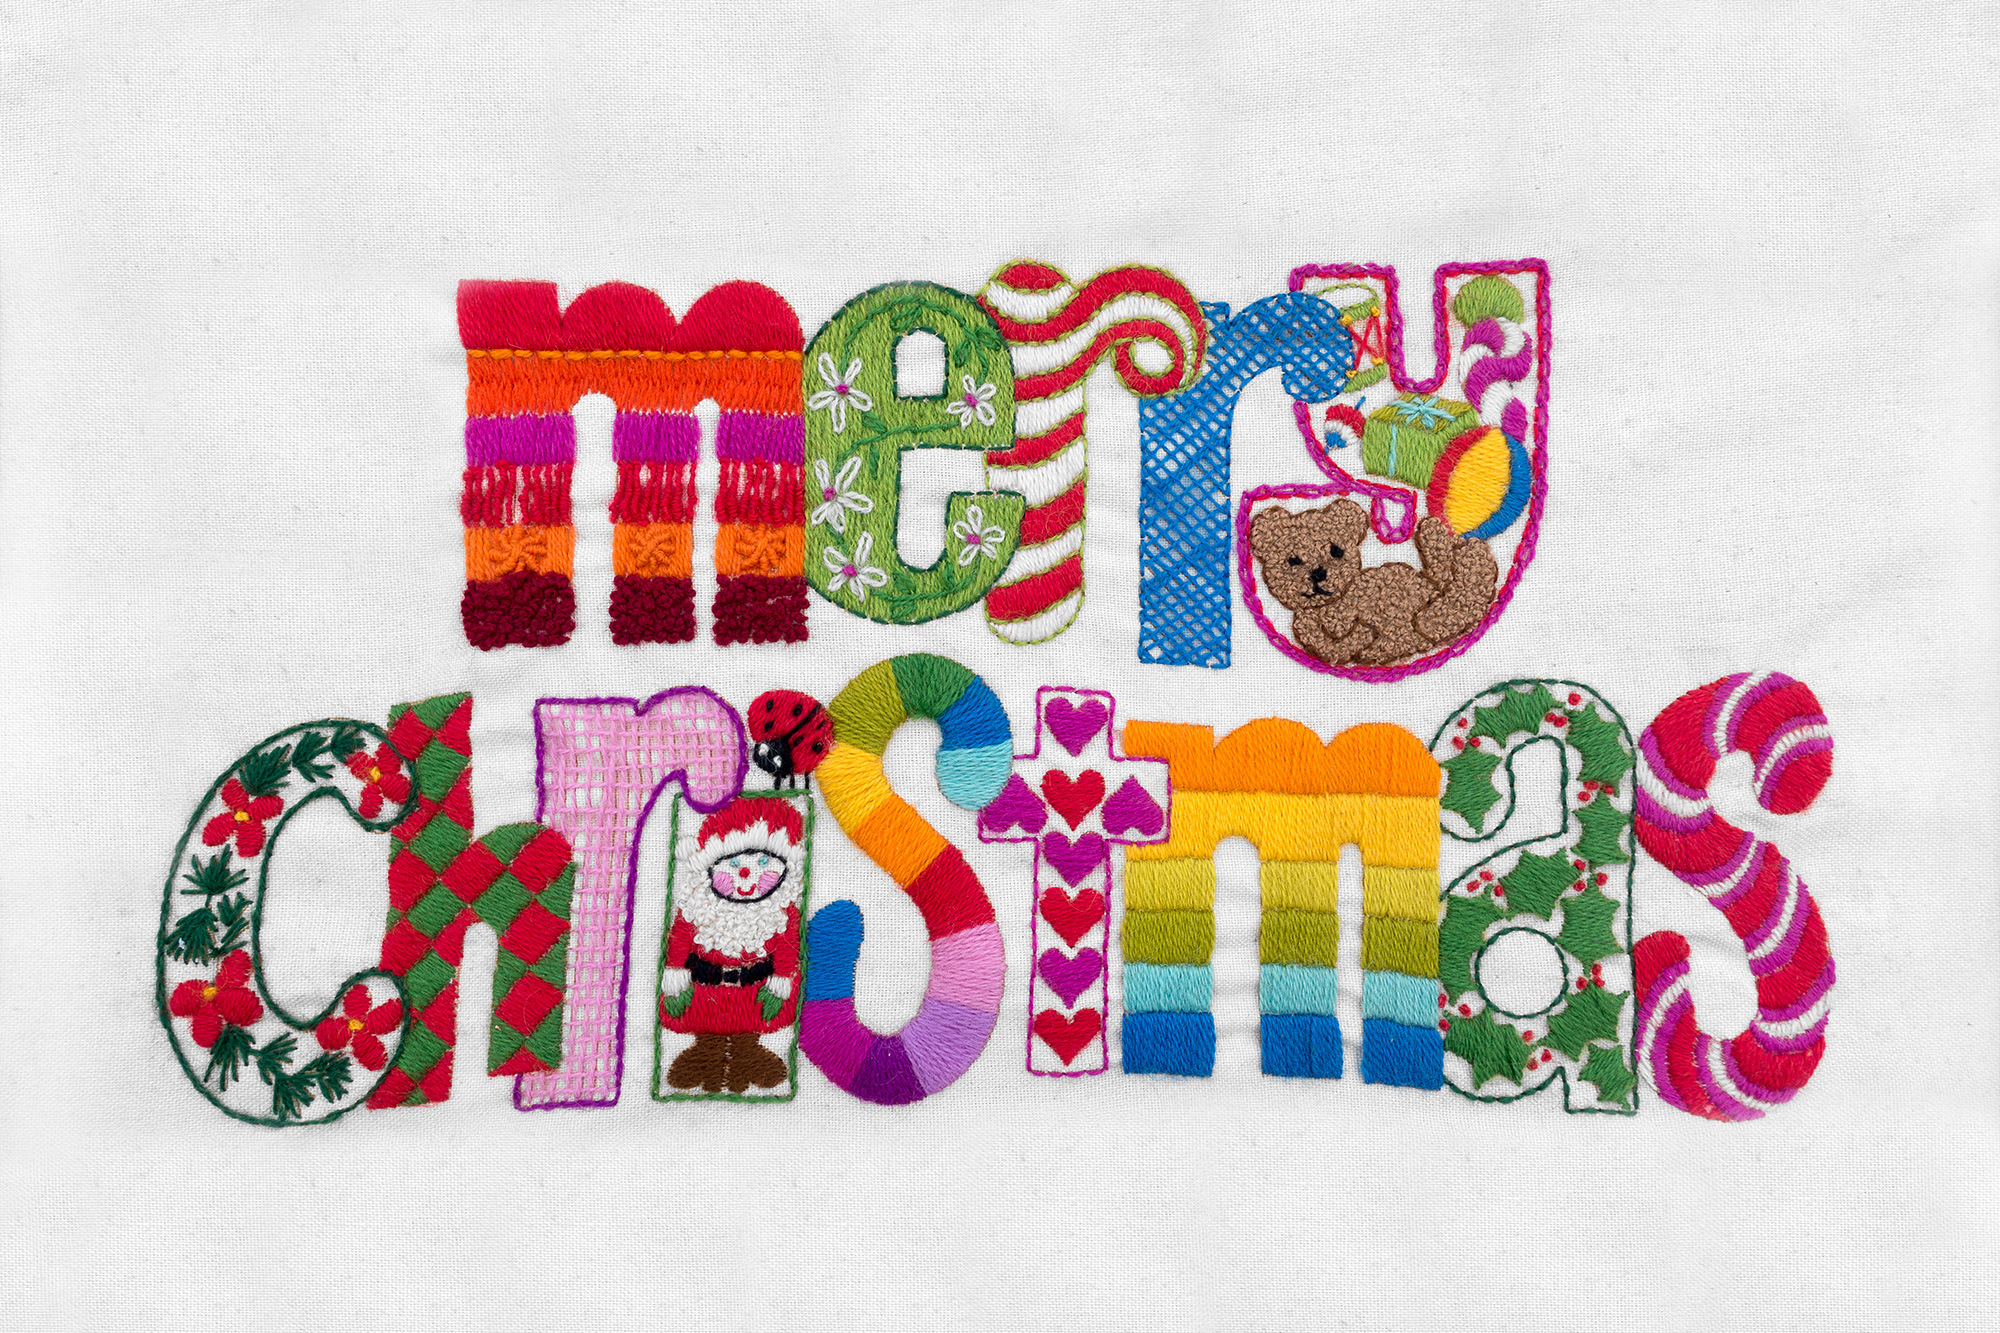 Merry Christmas embroidered